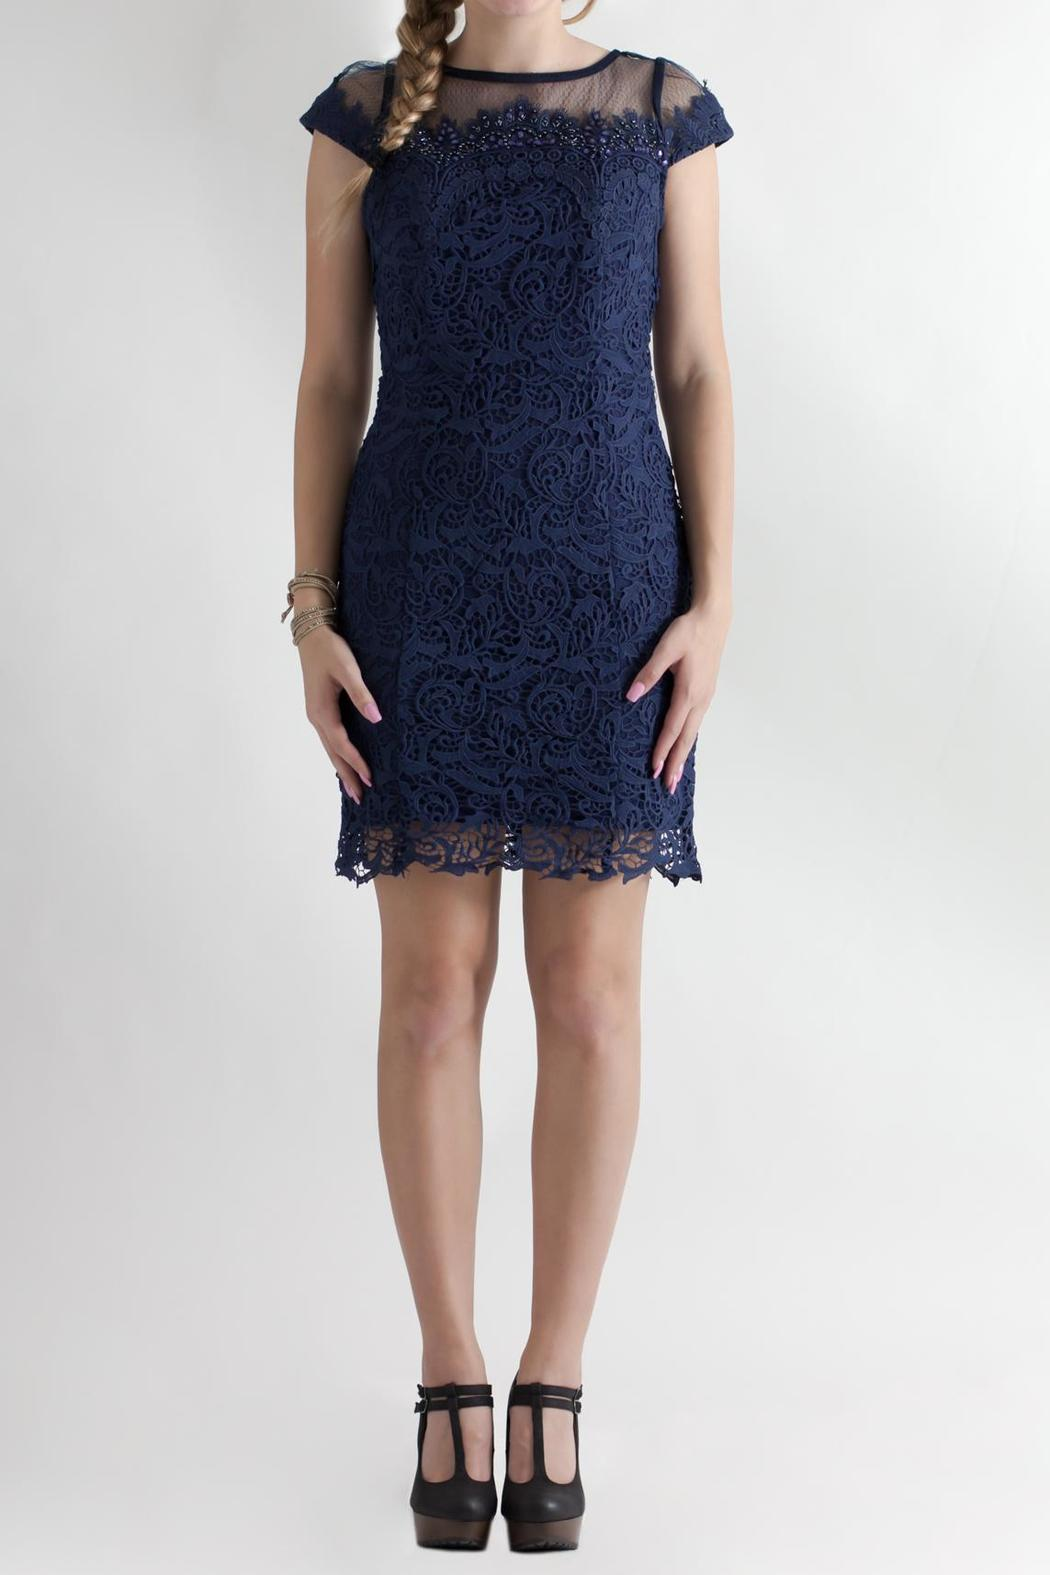 Nikibiki Beaded Lace Dress - Main Image